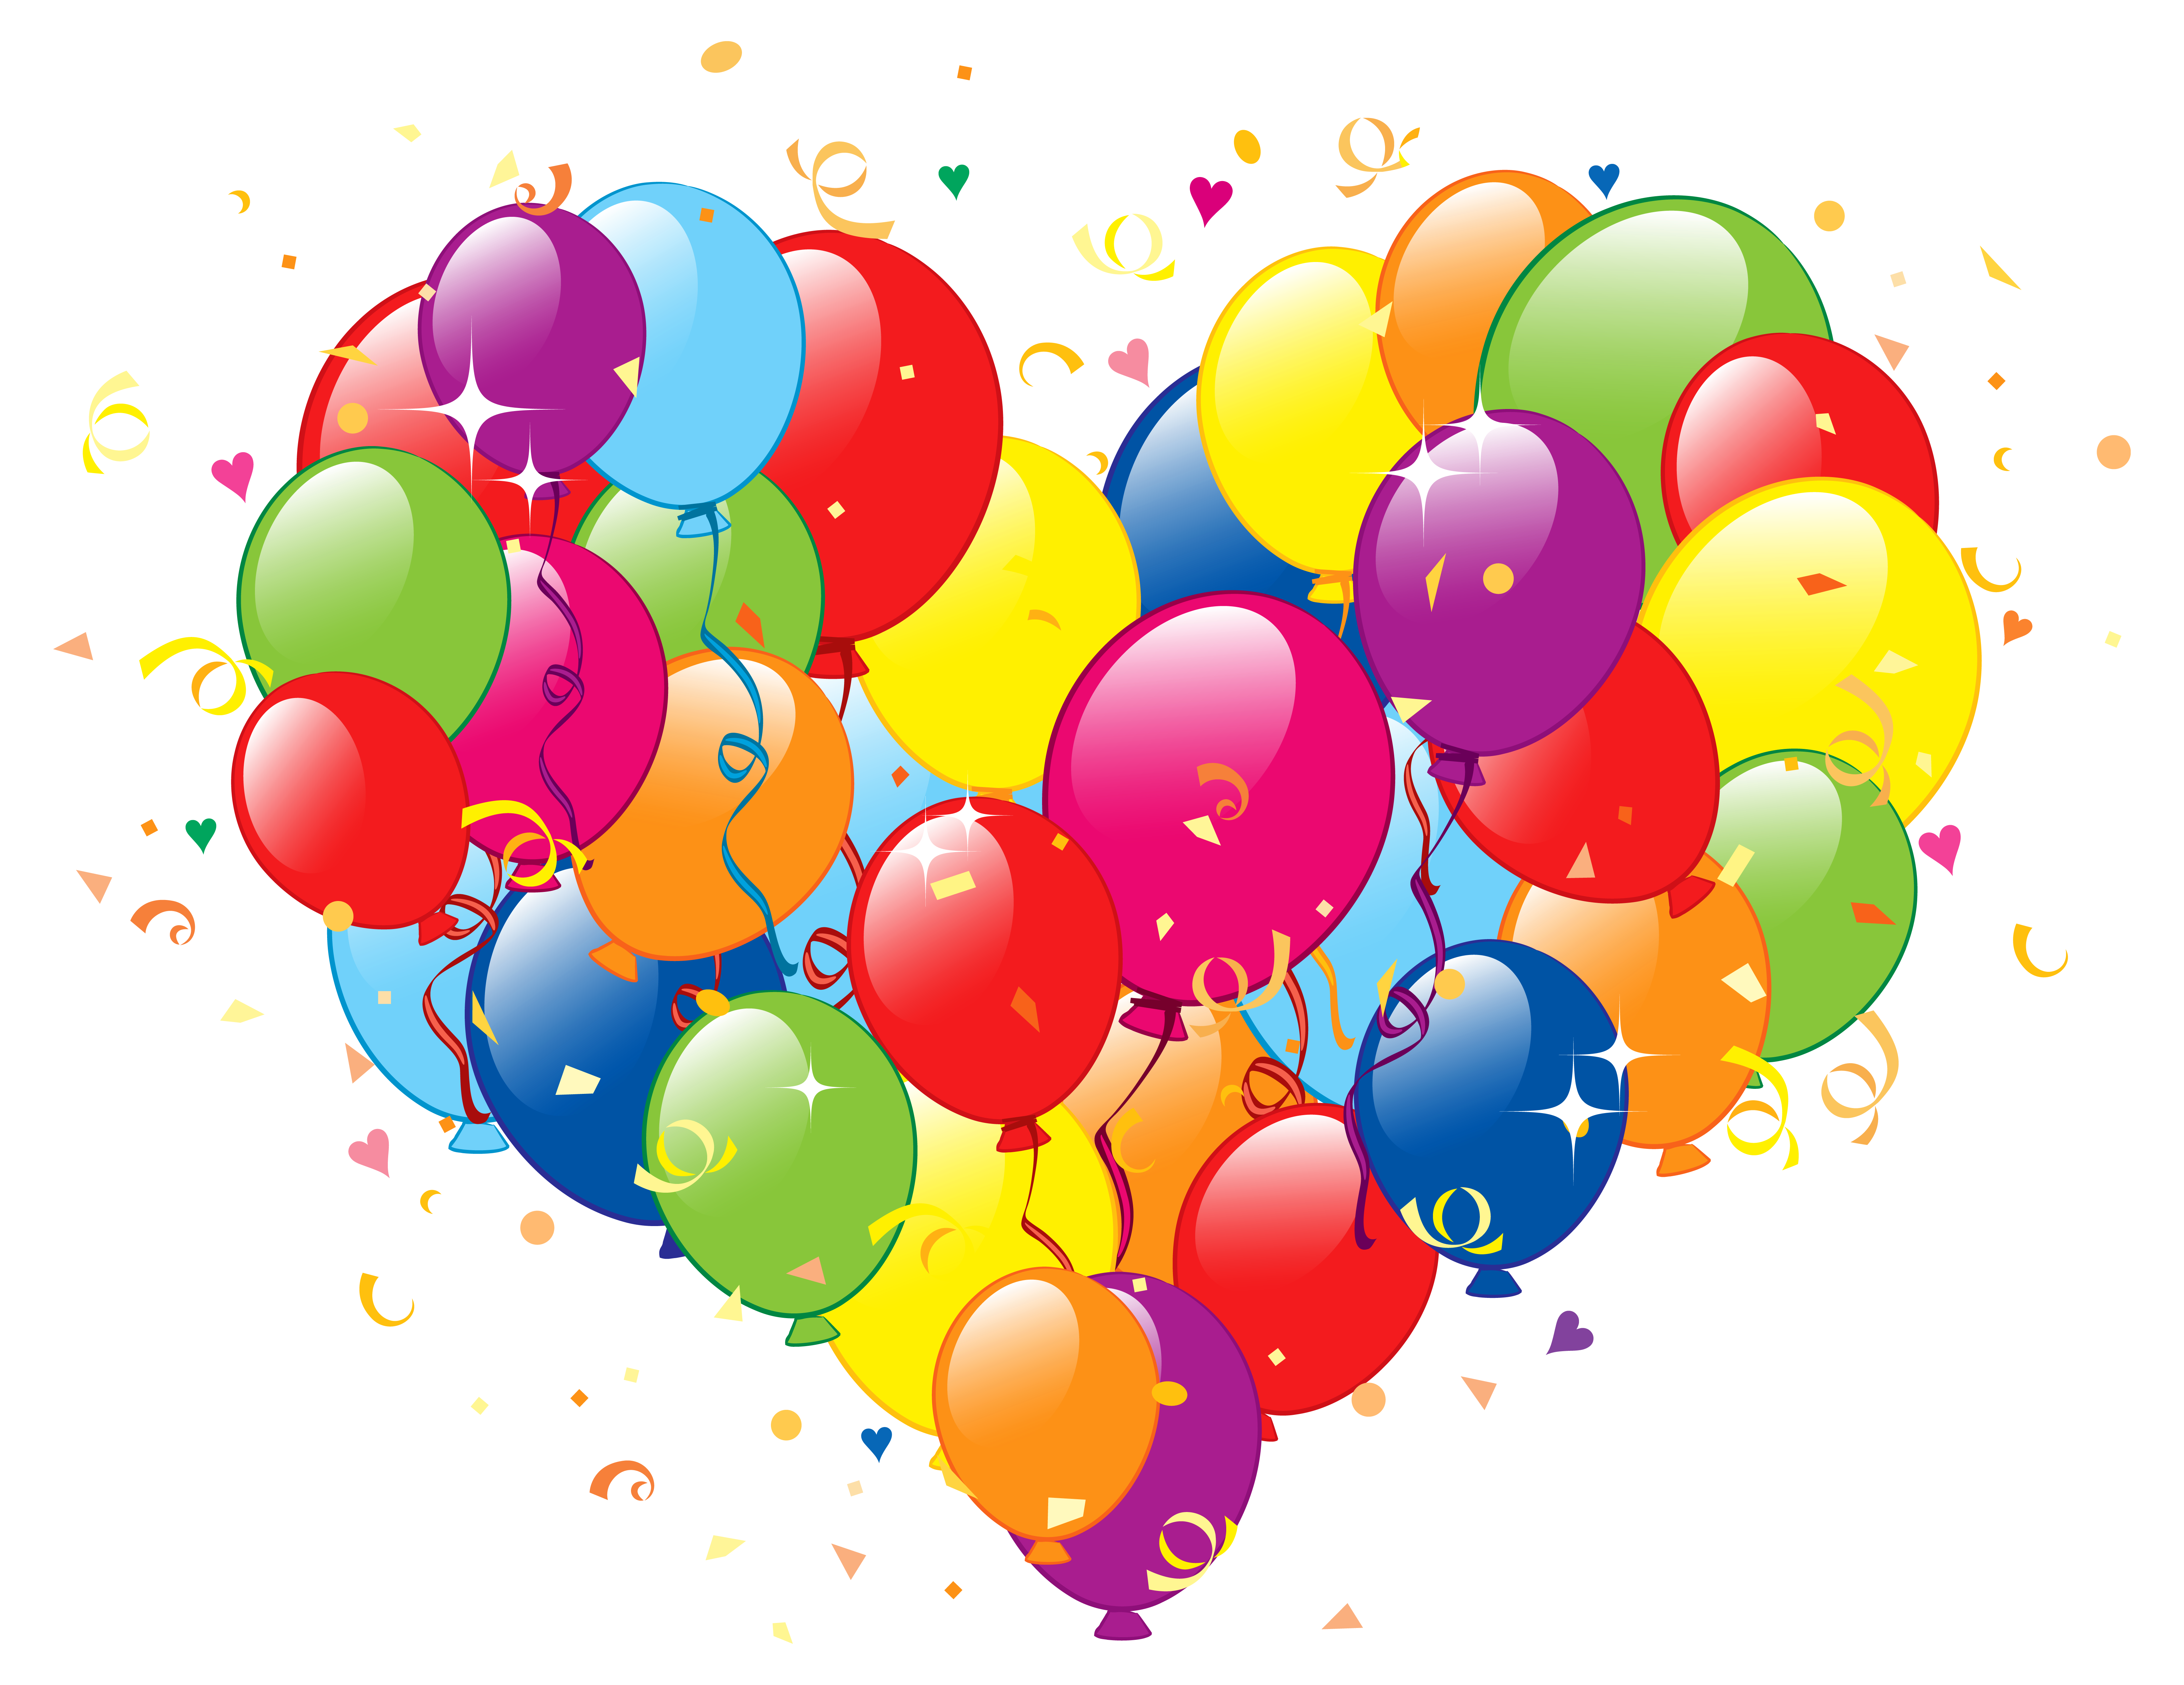 Of balloons png image. Clipart birthday heart